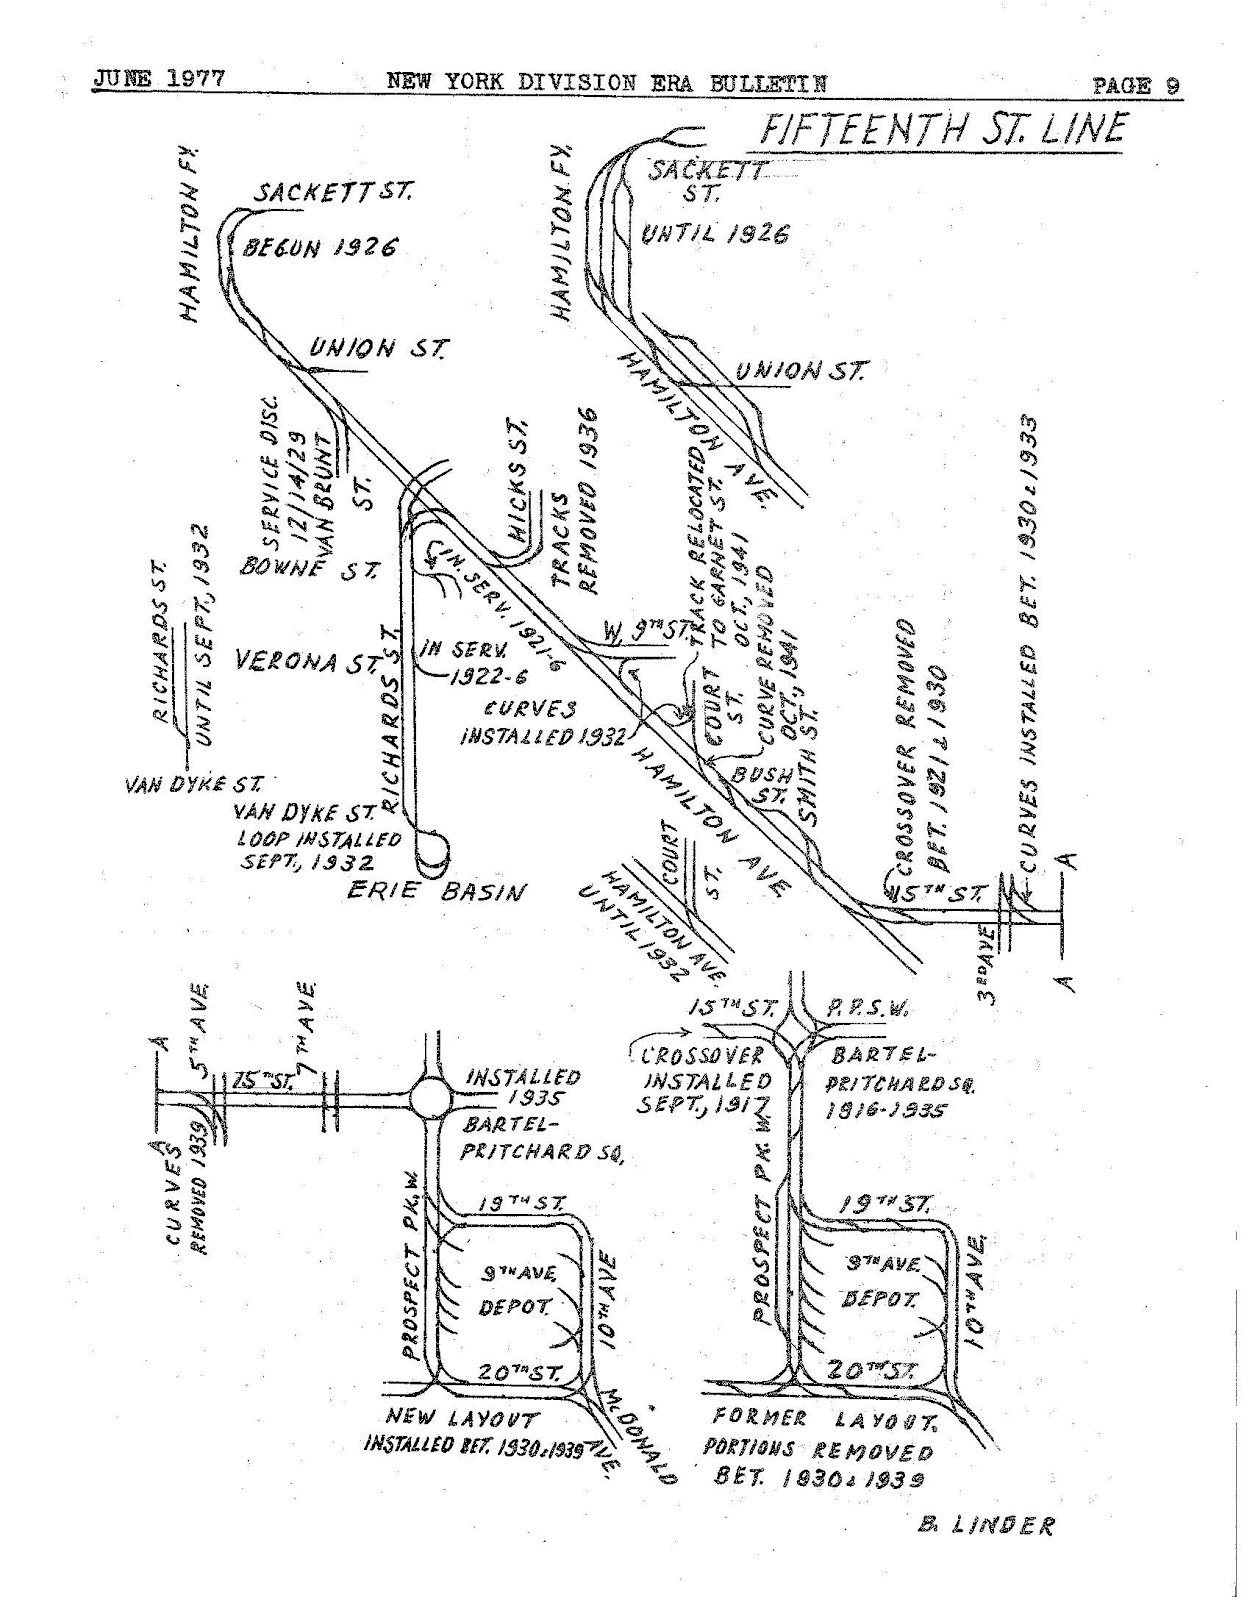 Streetcars and Spatial Analysis: 15th Street Trolley Line